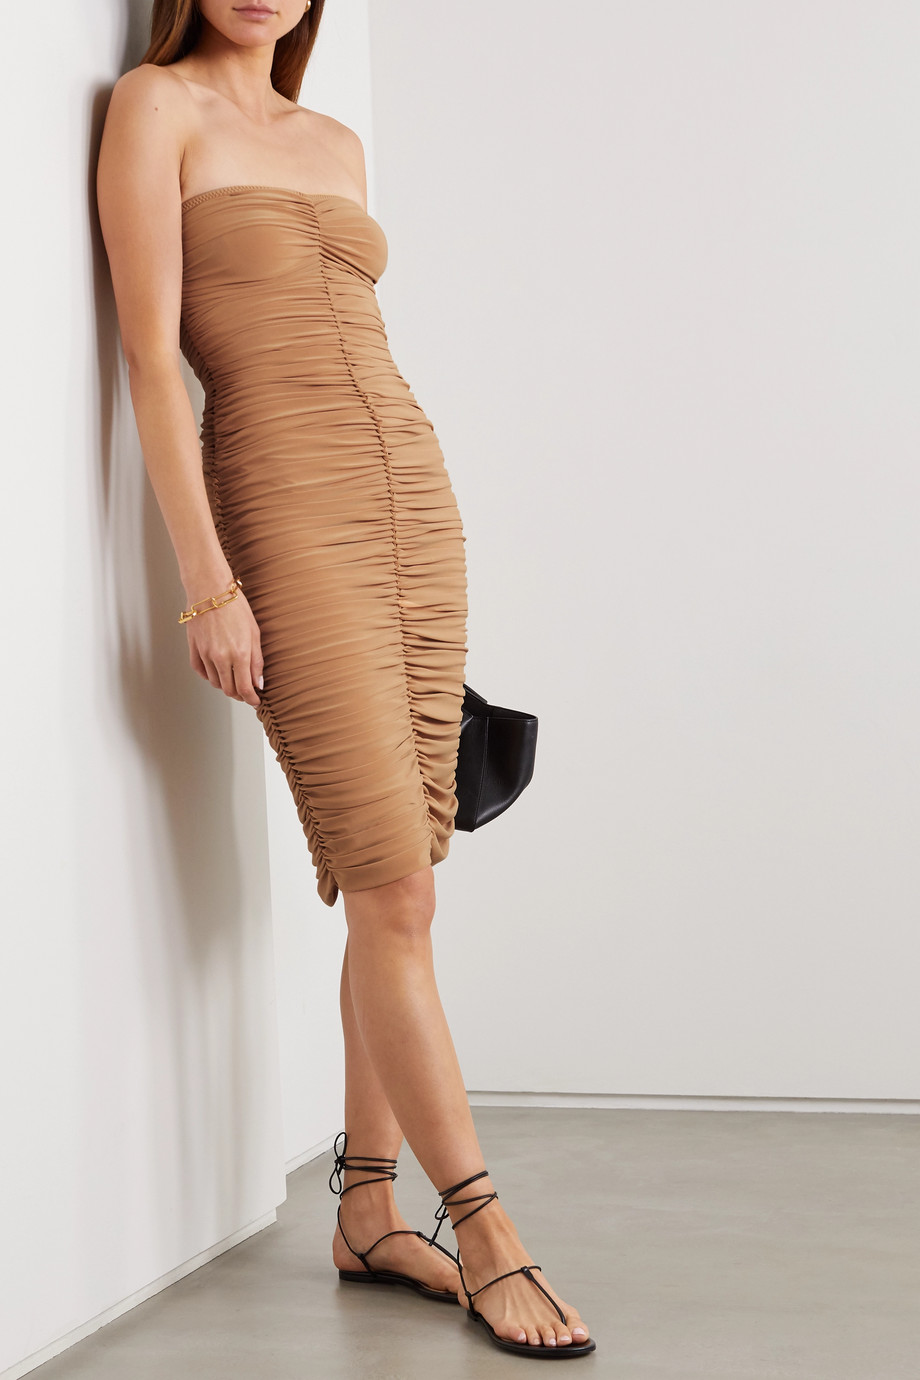 Norma Kamali Slinky strapless ruched stretch-jersey dress